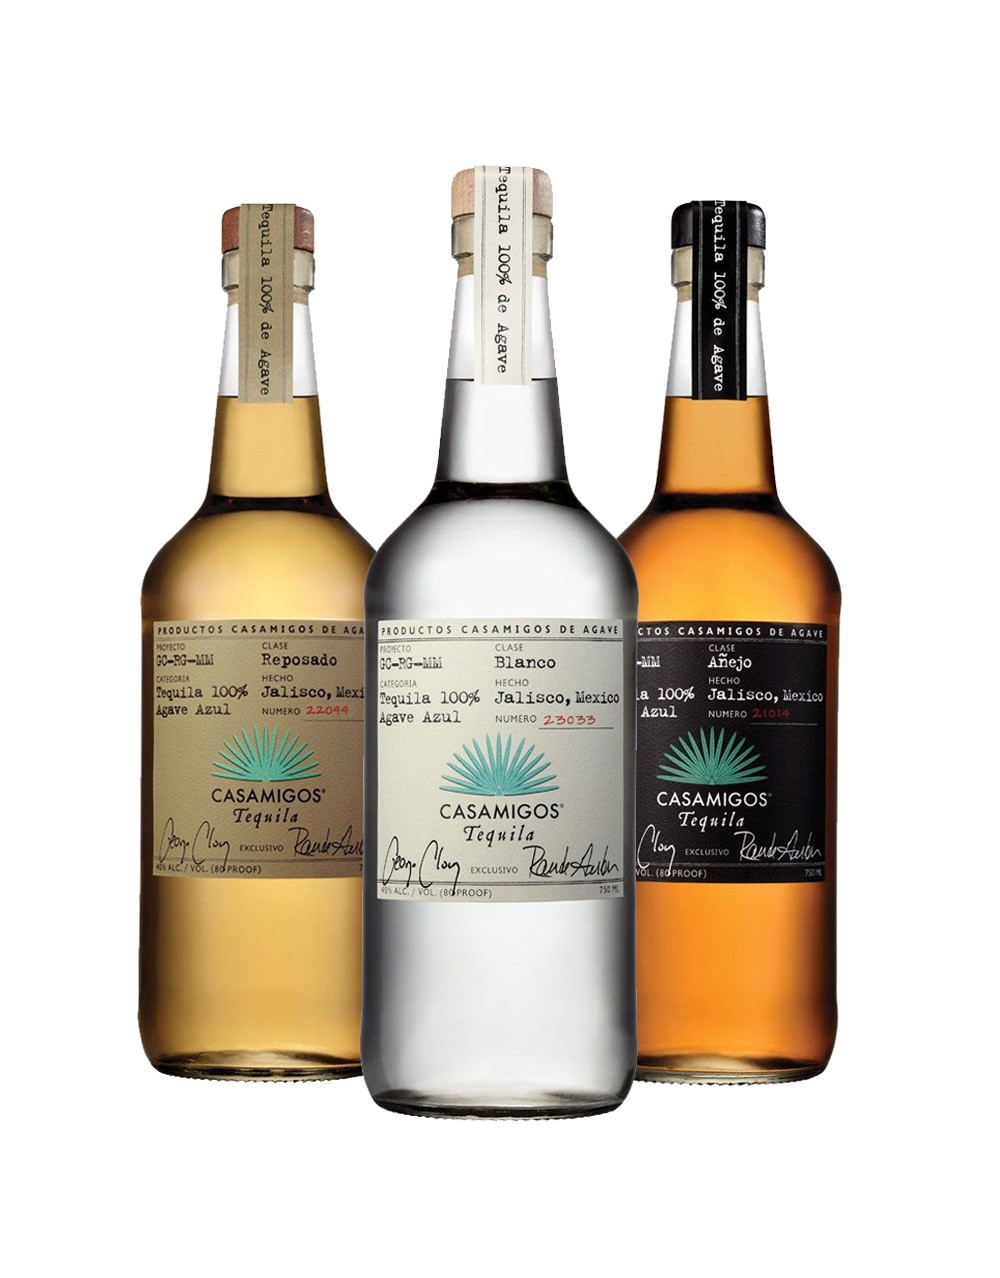 economics of tequila These tequilas are often called suave, joven, gold, or abocado, implying youth and smoothness tequila reposado - rested or aged the first definitive level of aging is termed reposado or rested.